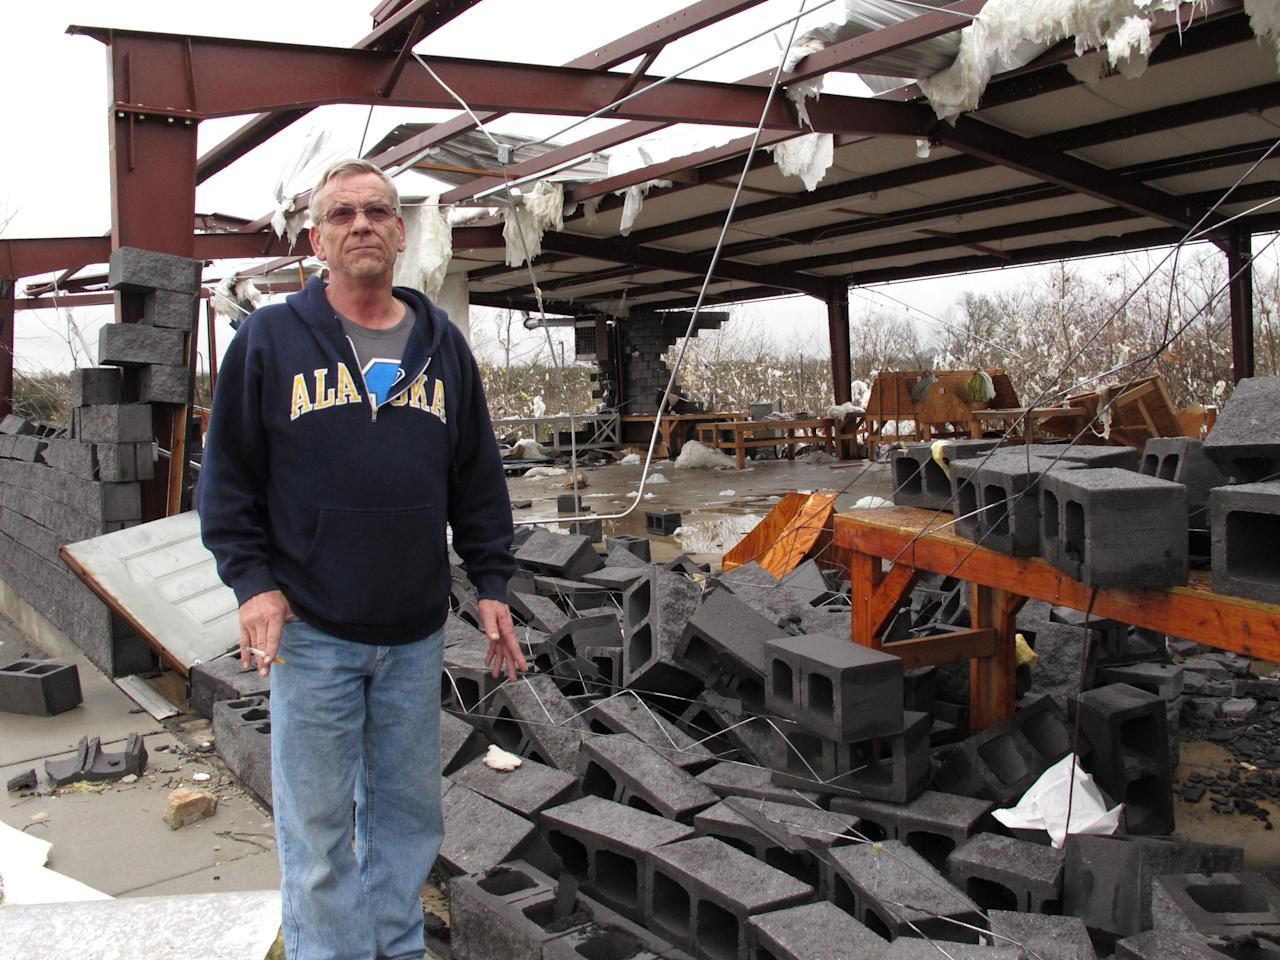 Rick Martin stands in front of a Tennessean newspaper distribution center in Mount Juliet, Tenn., on Wednesday, Jan. 30, 2013, that was destroyed in a severe storm. Forecasters examined the damage path of 4.6 miles Wednesday morning and estimated the peak wind speed at 115 mph, qualifying the tornado as an EF-2 twister. The path of damage was about 150 yards wide. (AP Photo/Kristin M. Hall)